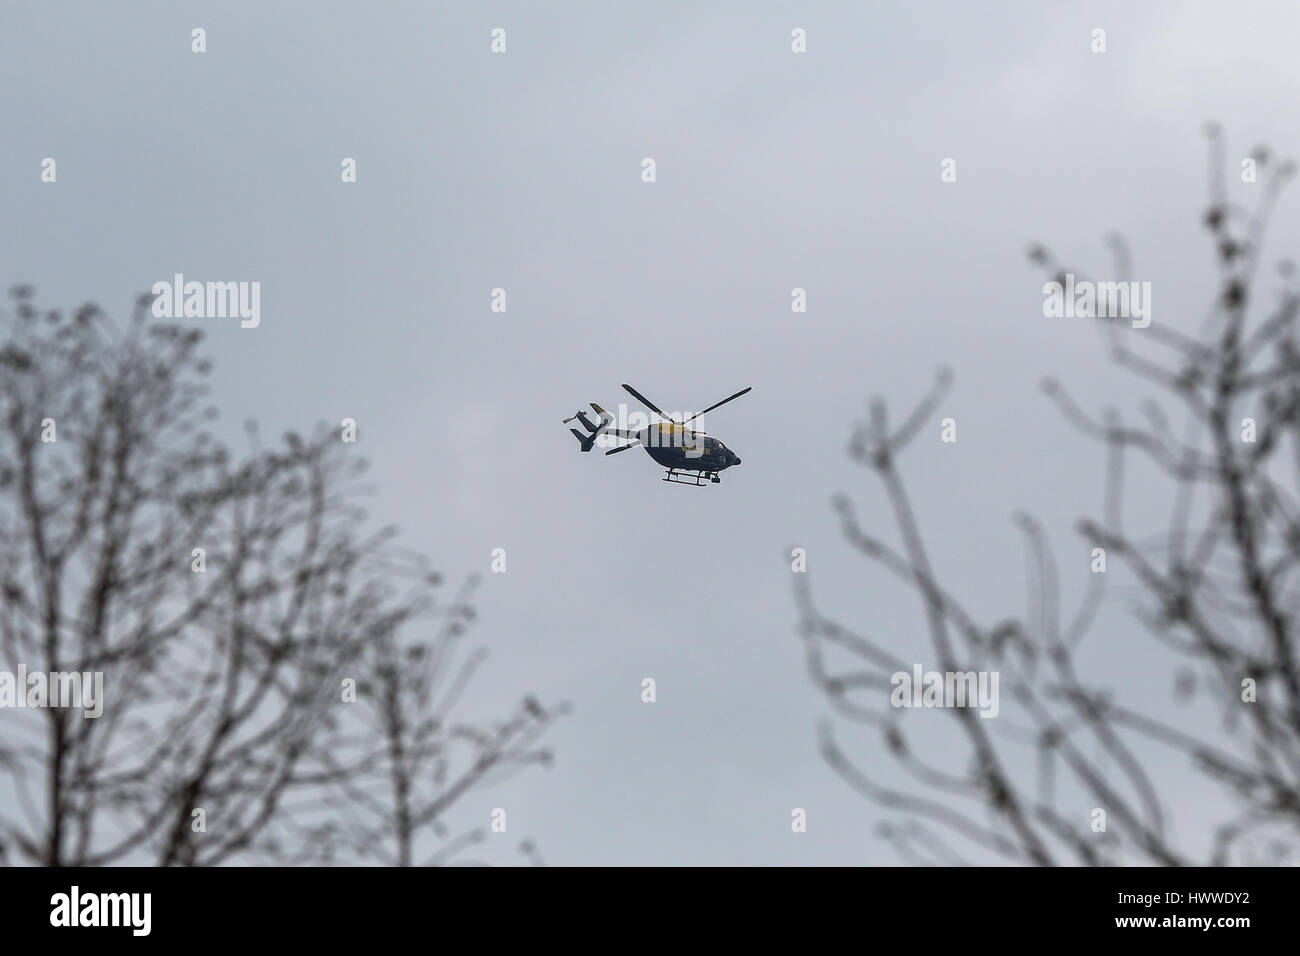 Westminster, London, UK 23 Mar 2017- A police helicopter